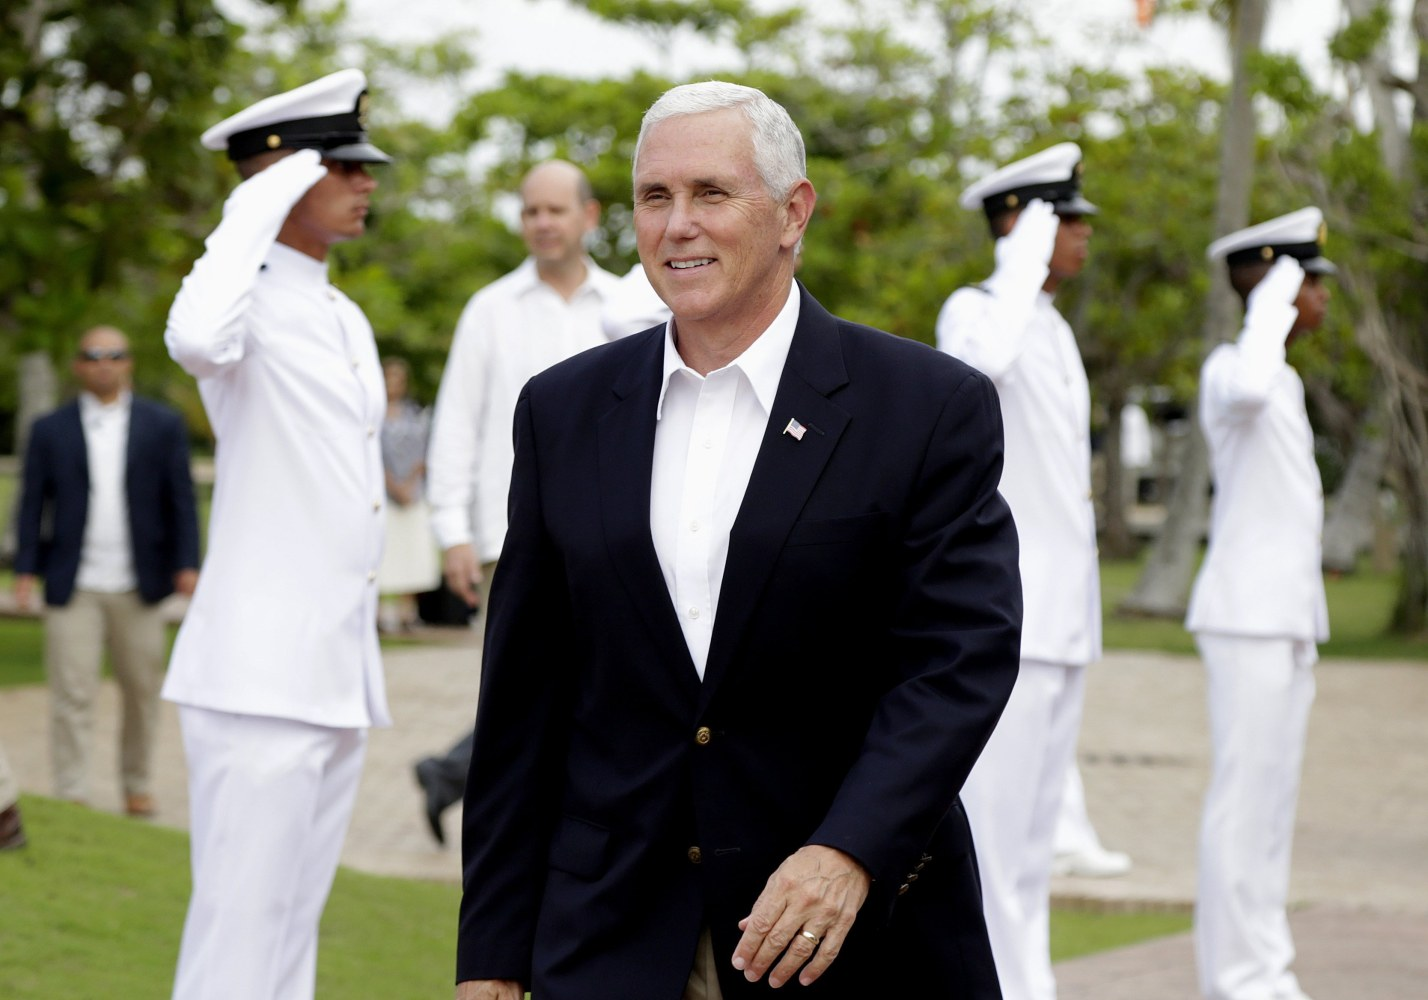 Pence urges Latin American nations to cut ties with N. Korea